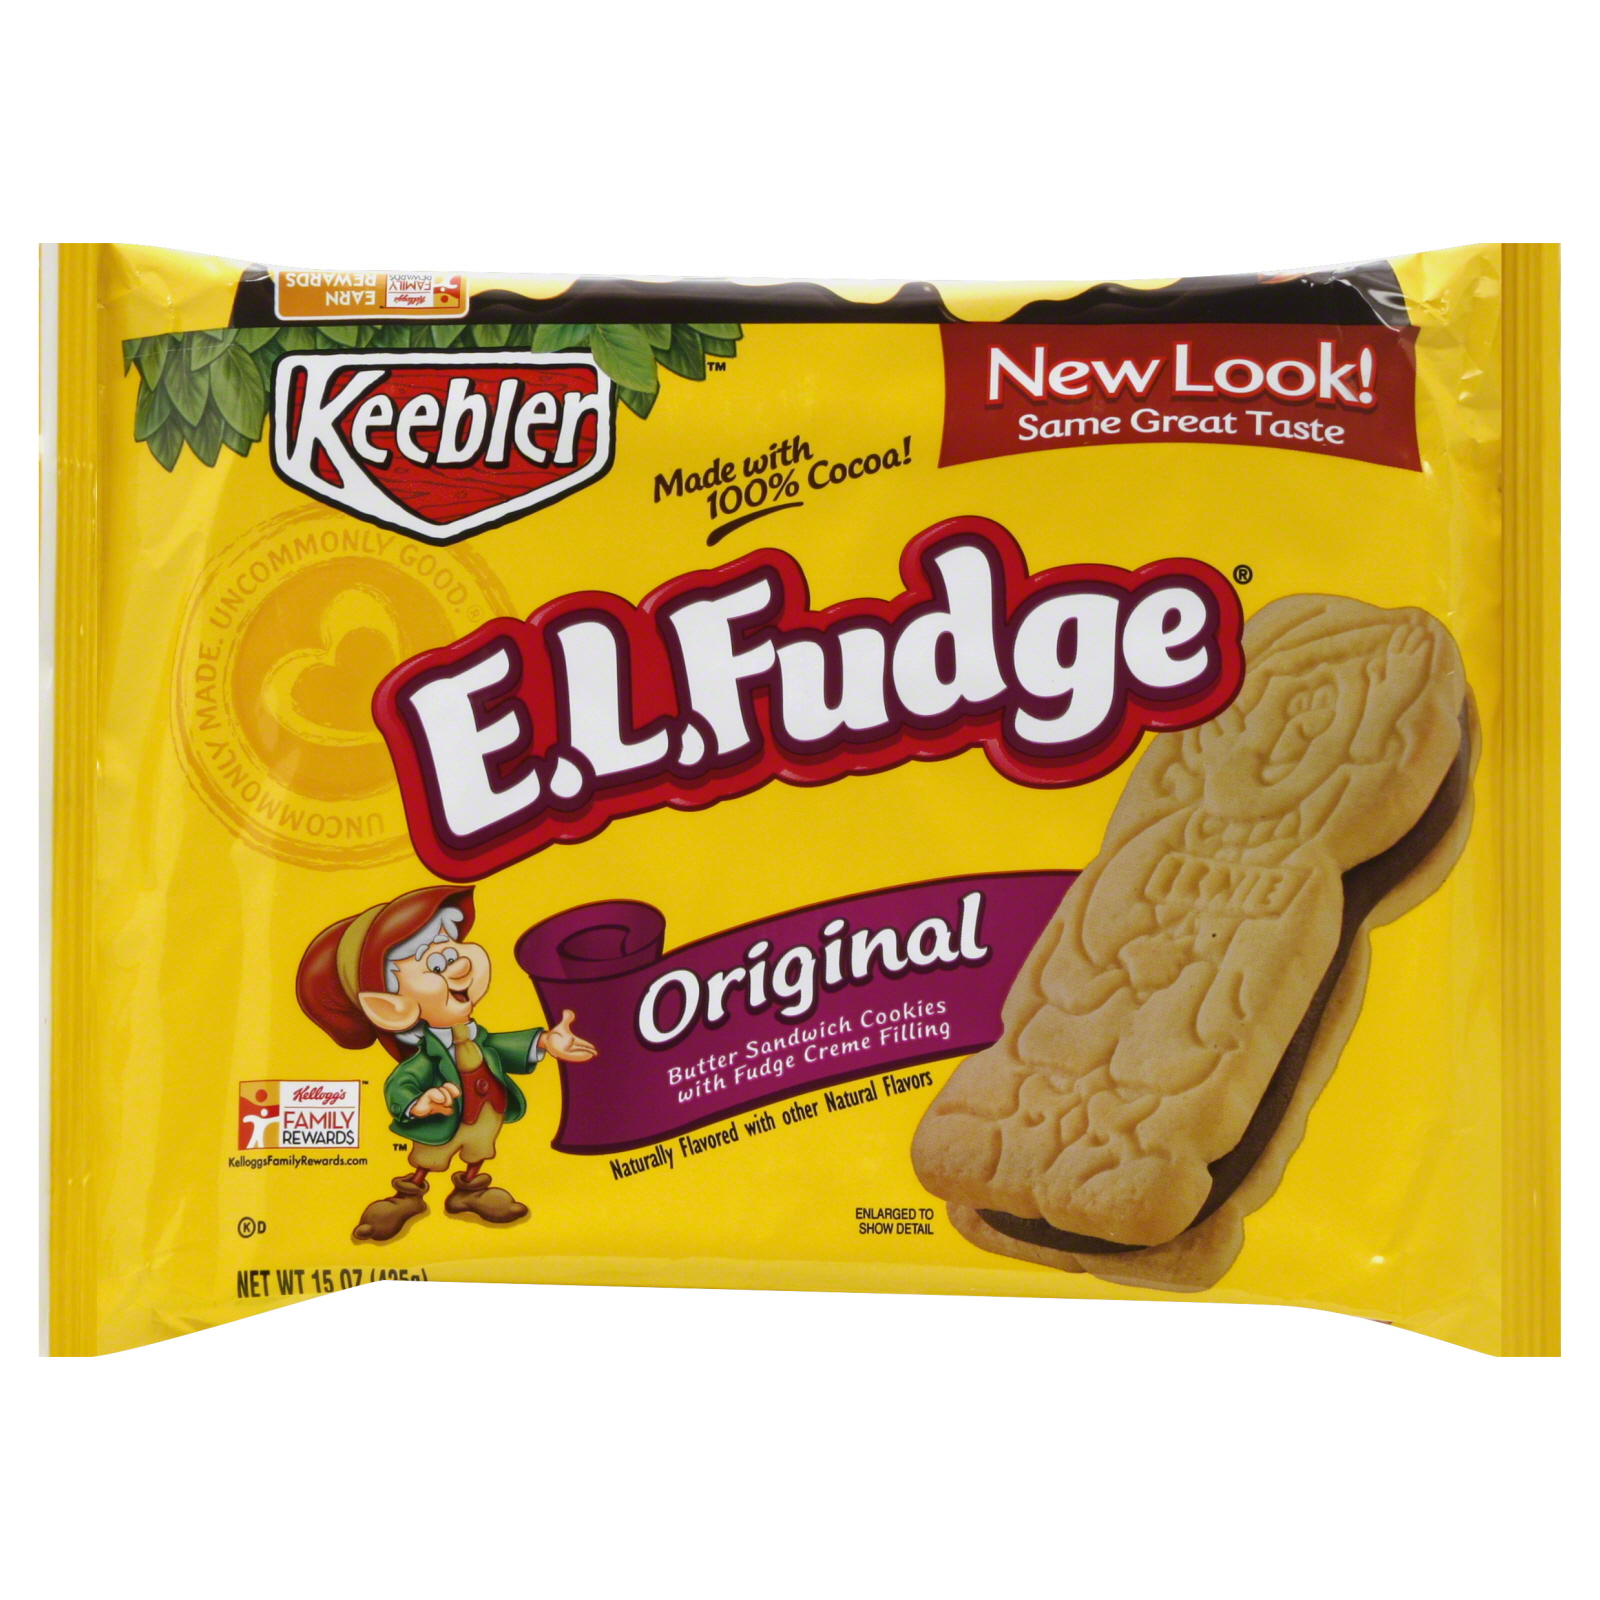 E.L. Fudge Cookies, Sandwich, Original, 15 oz (425 g)                                                                            at mygofer.com